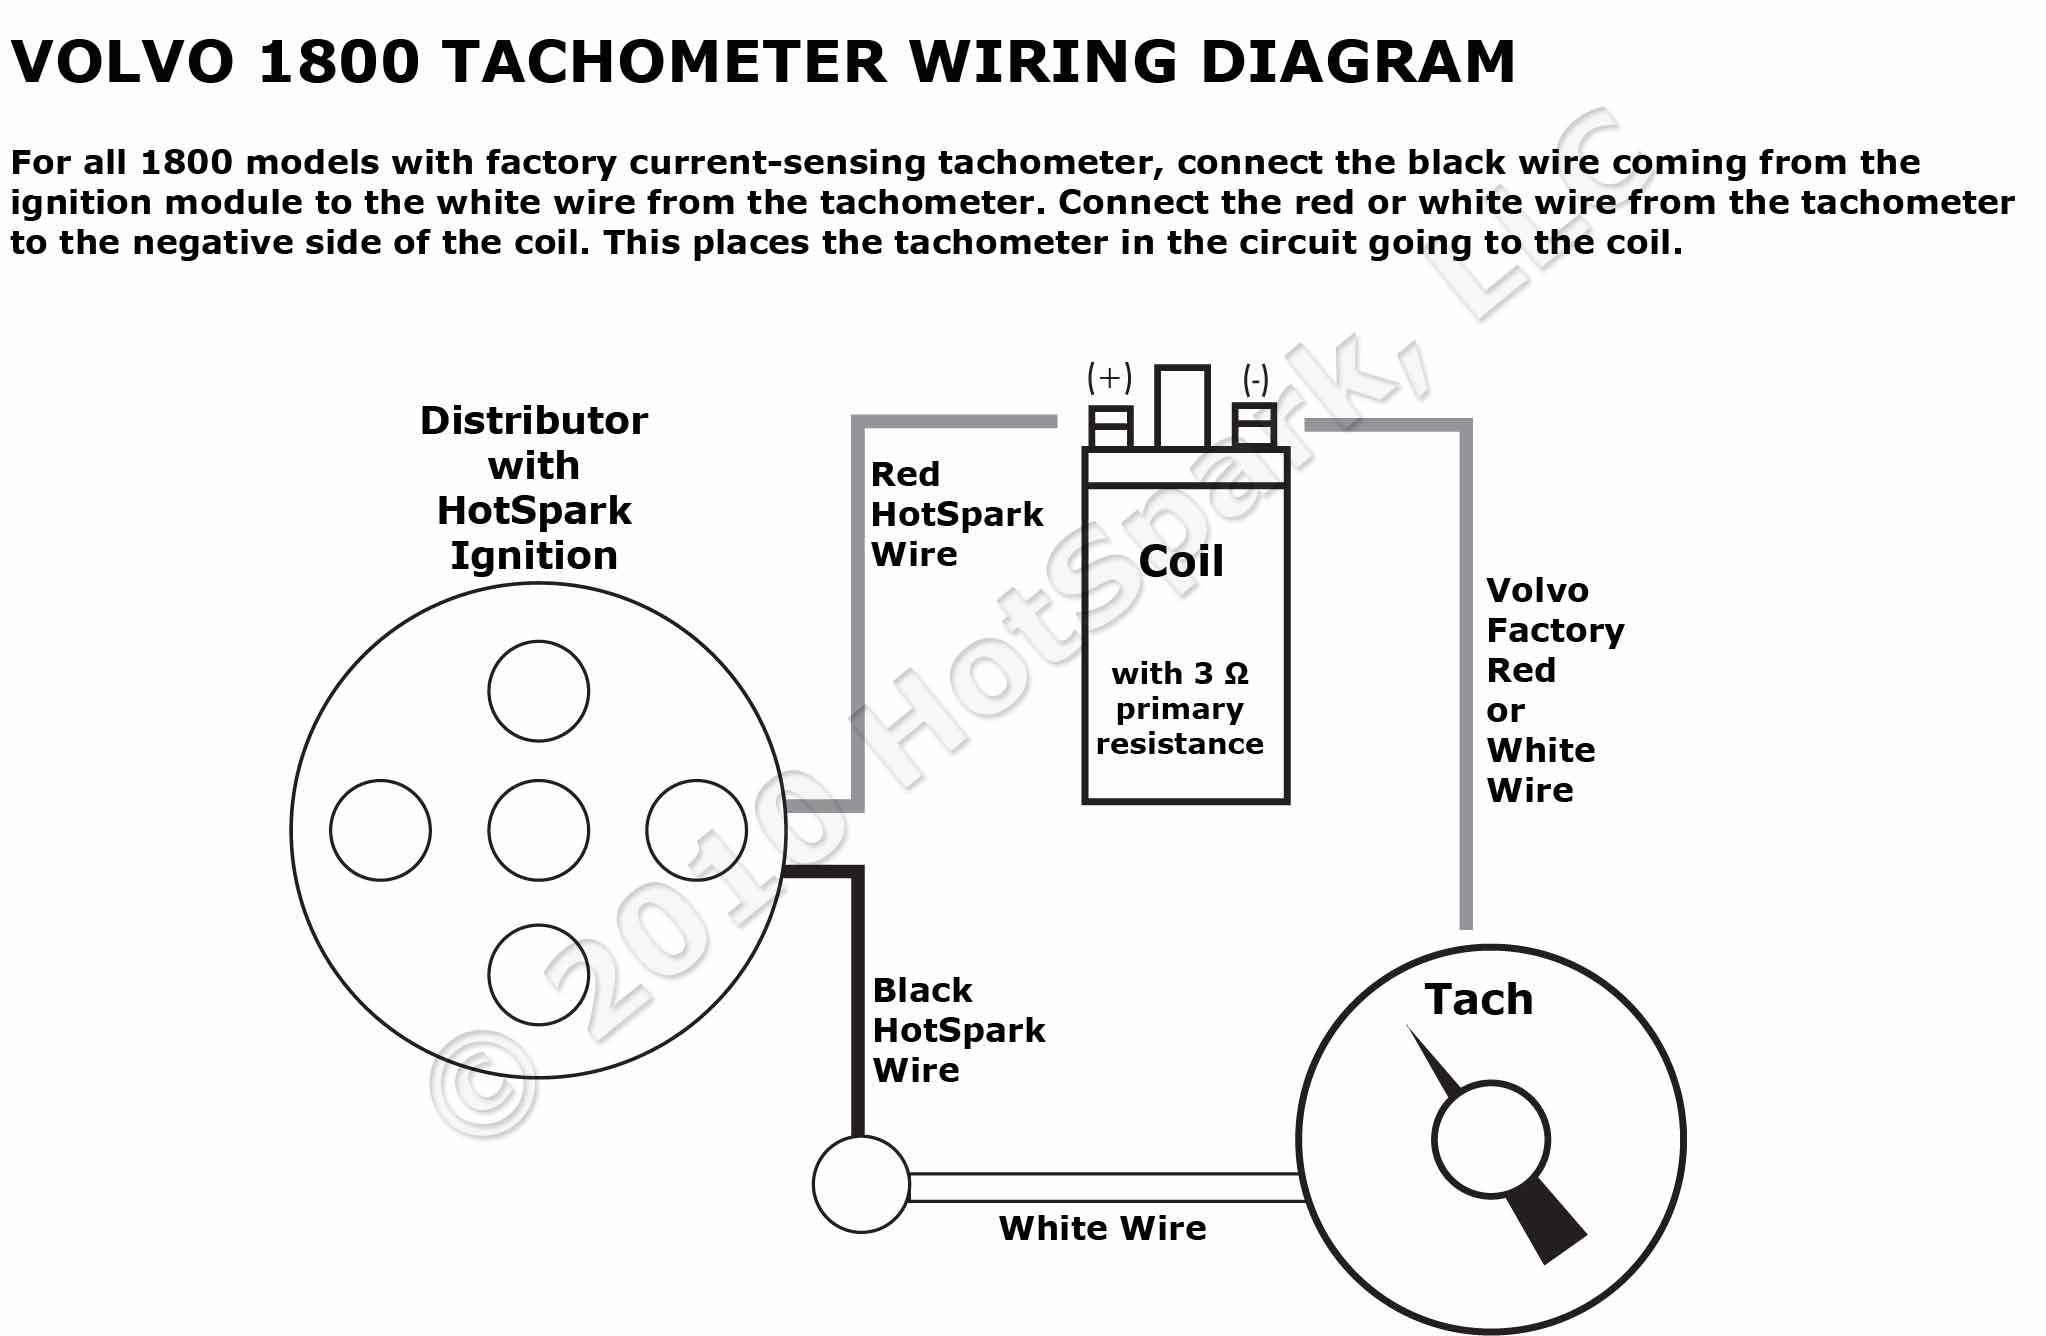 Volvo 1800 Tachometer Wiring Diagram With Hotspark